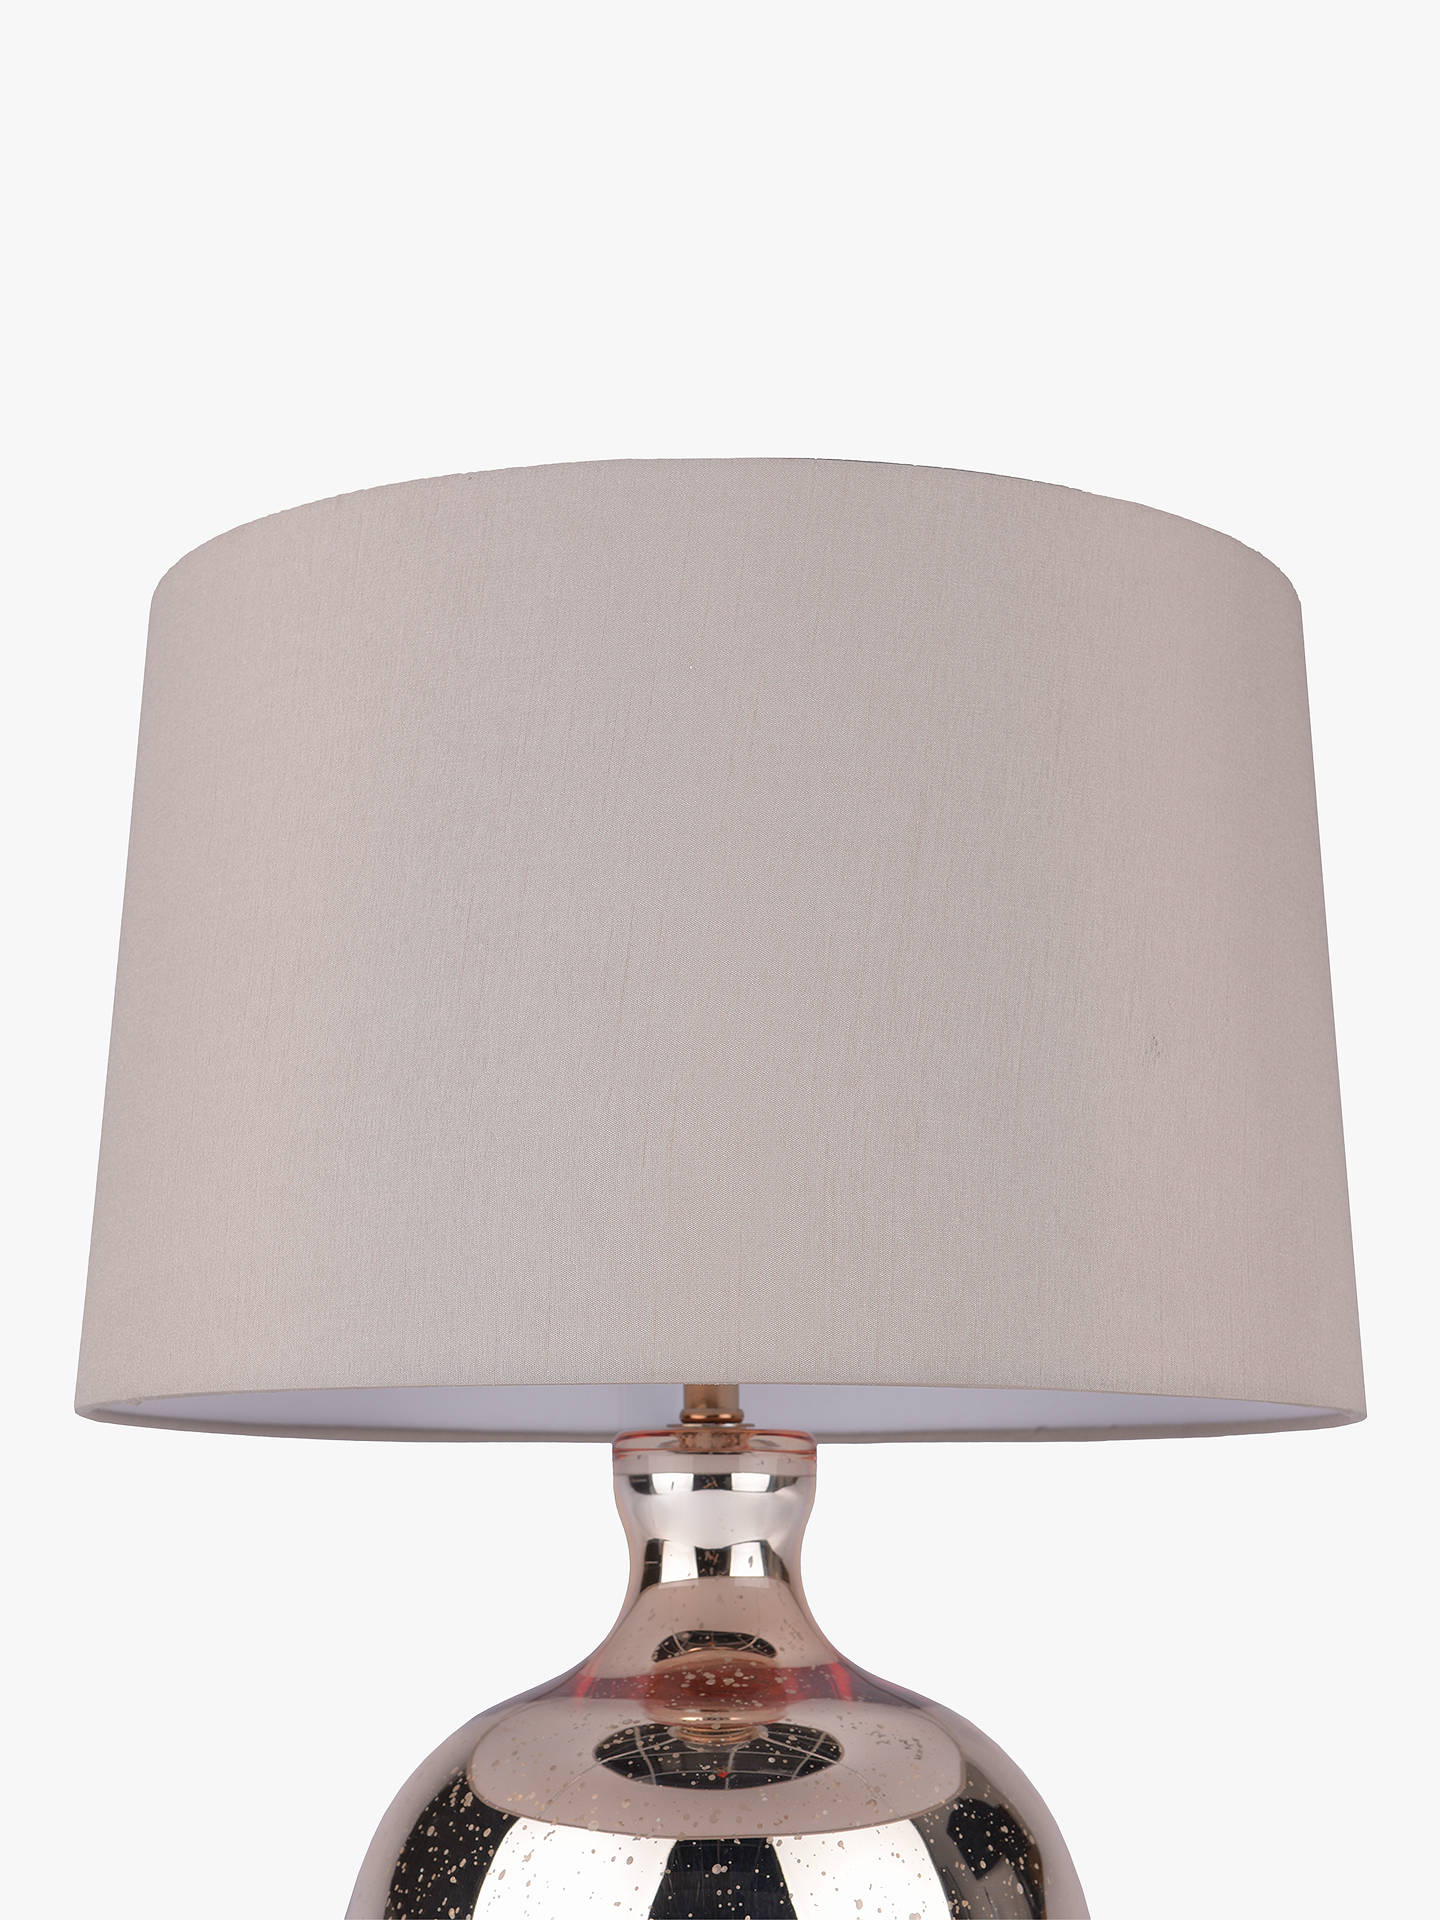 BuyJohn Lewis & Partners Tabitha Copper Table Lamp Online at johnlewis.com